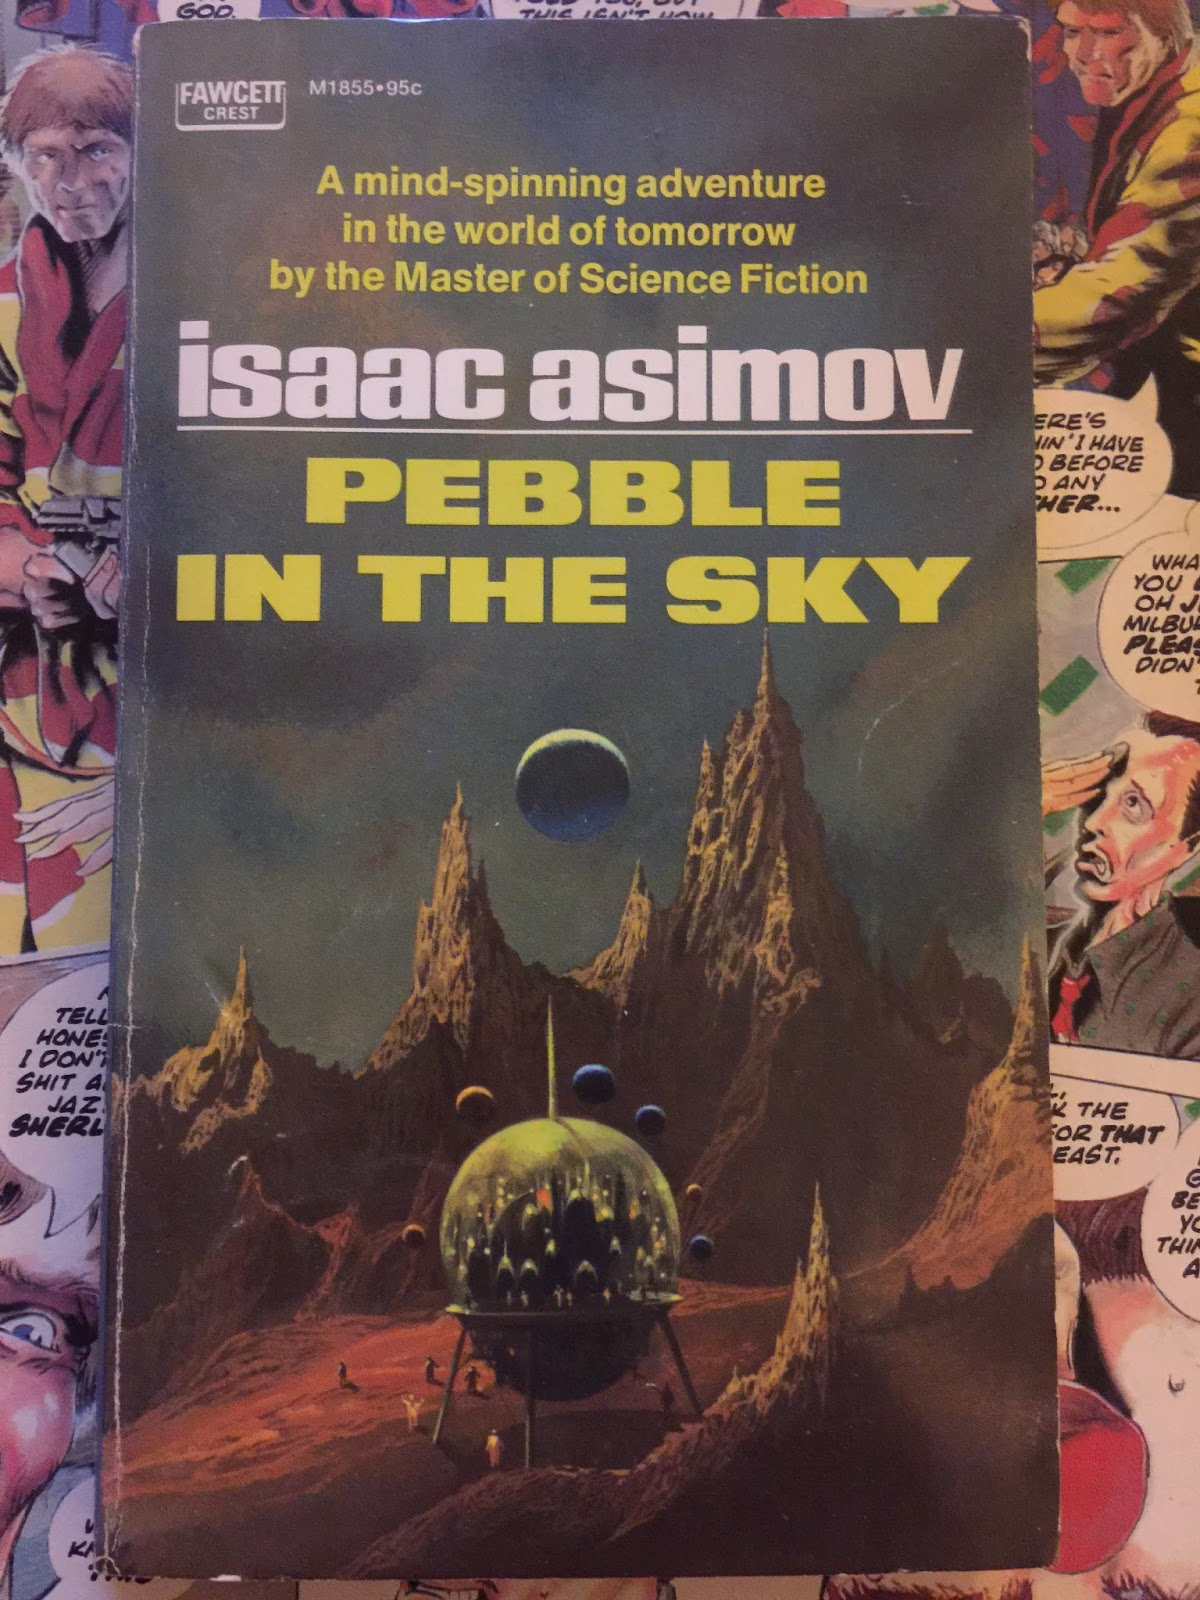 fiction covers science fantasy edition